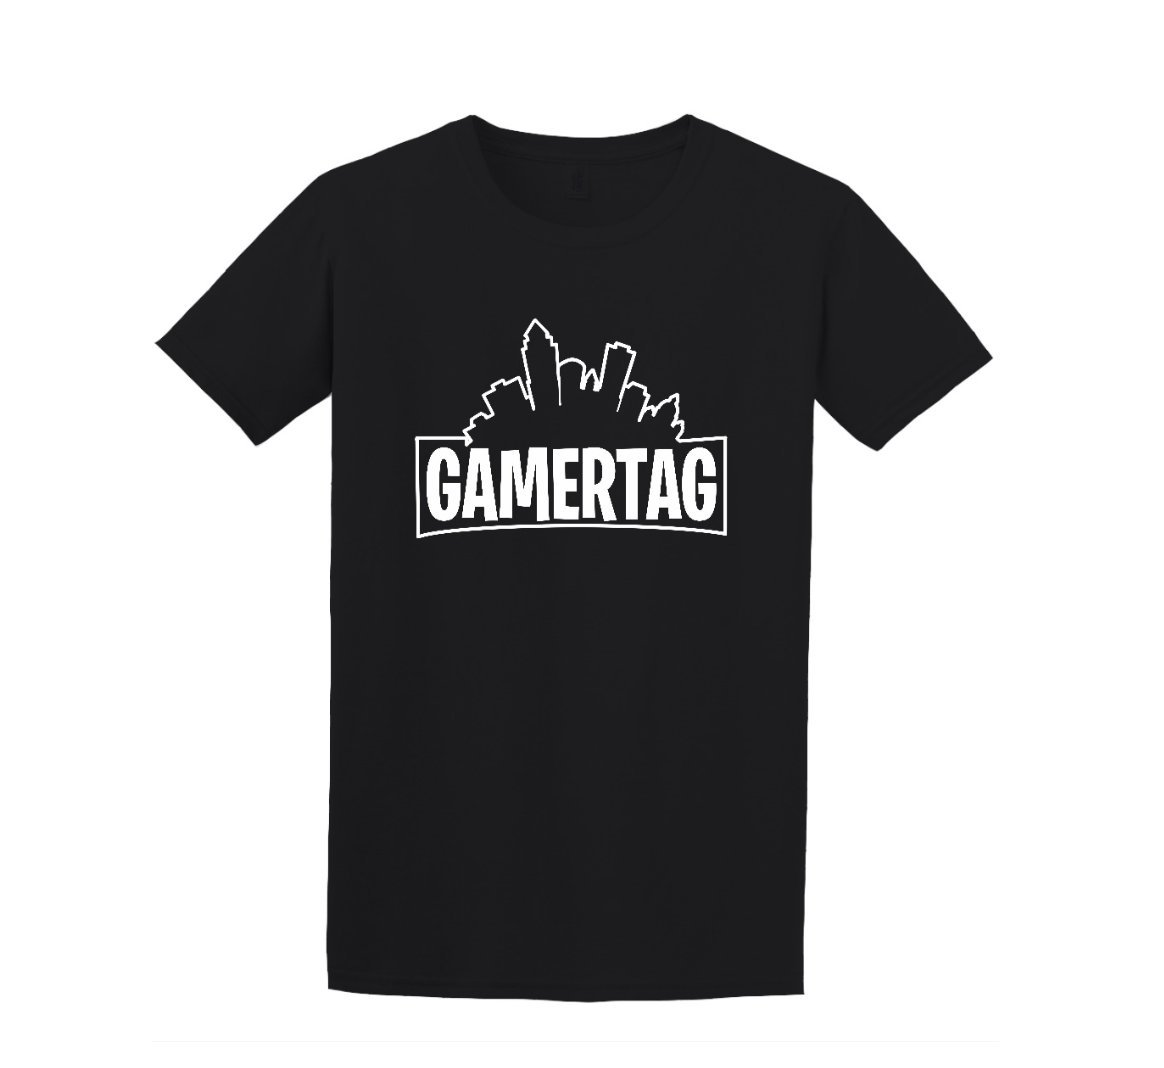 Personalized GAMERTAG Fortnite Inspired - PUBG, Gamer, Geek, Gift for Gamers, Battlegrounds, Fortnight Battle Royale, Cosplay, Costume